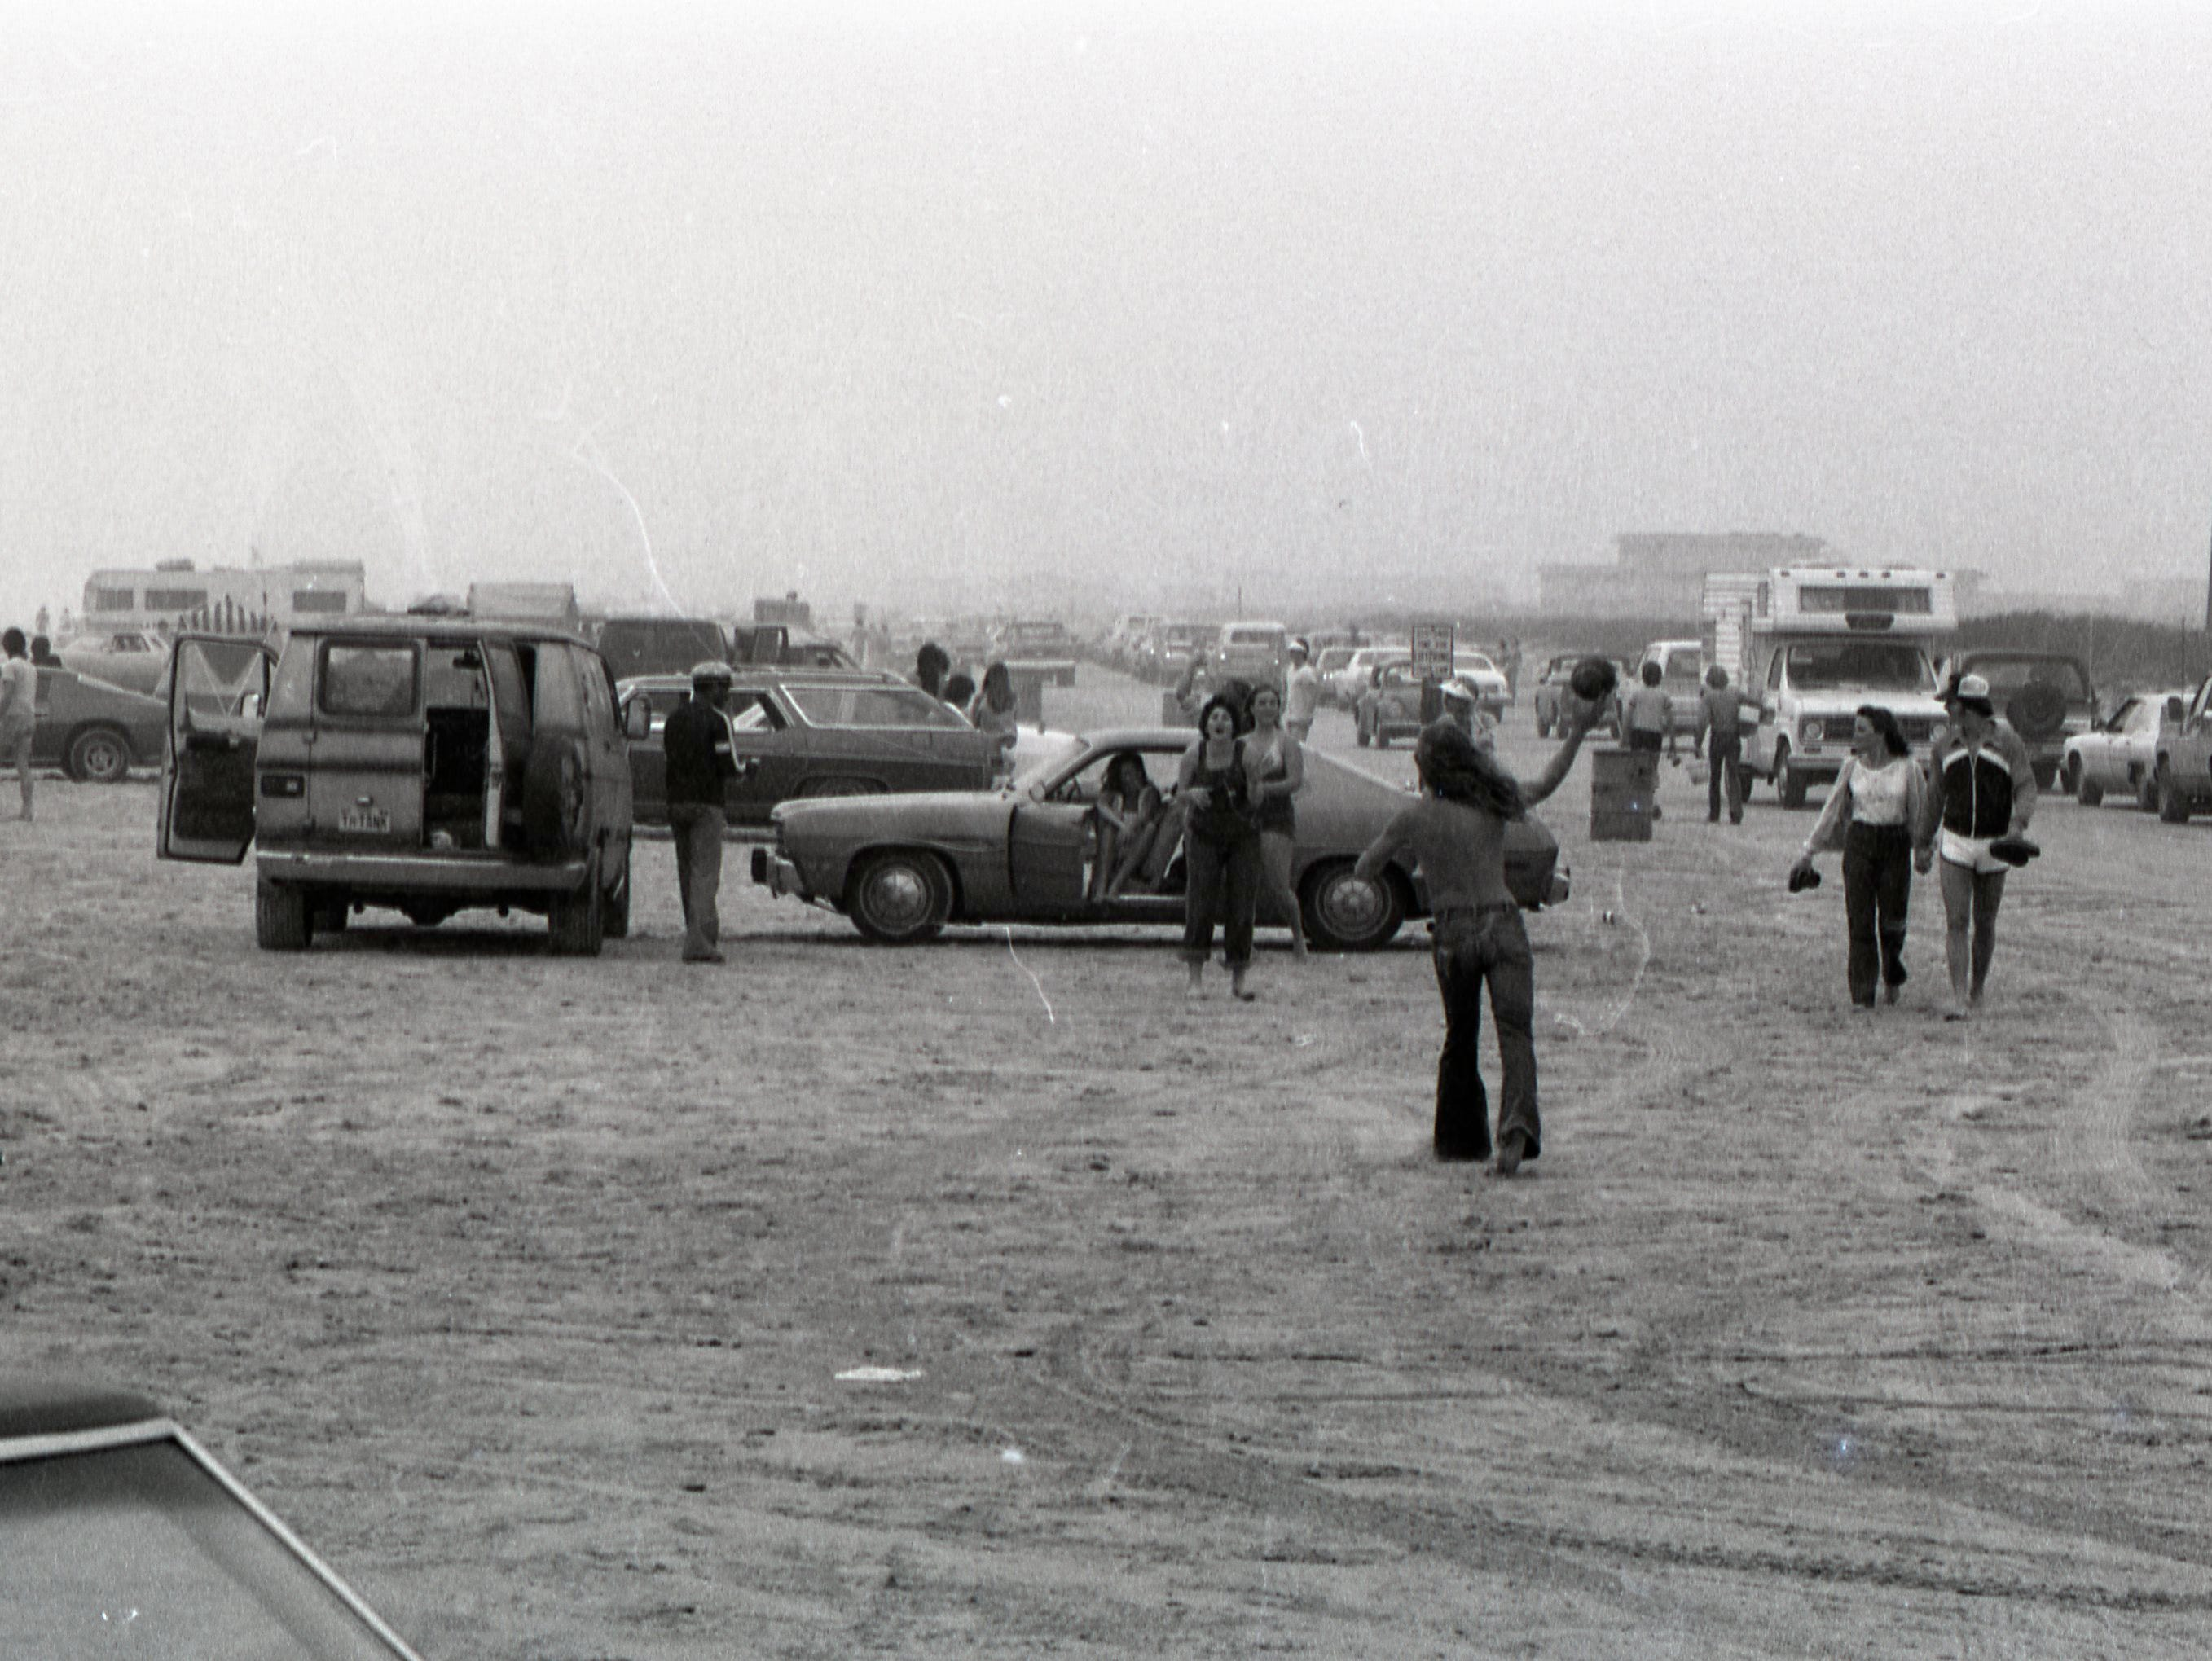 People enjoy the beach on Padre and Mustang islands during spring break on March 17, 1979.